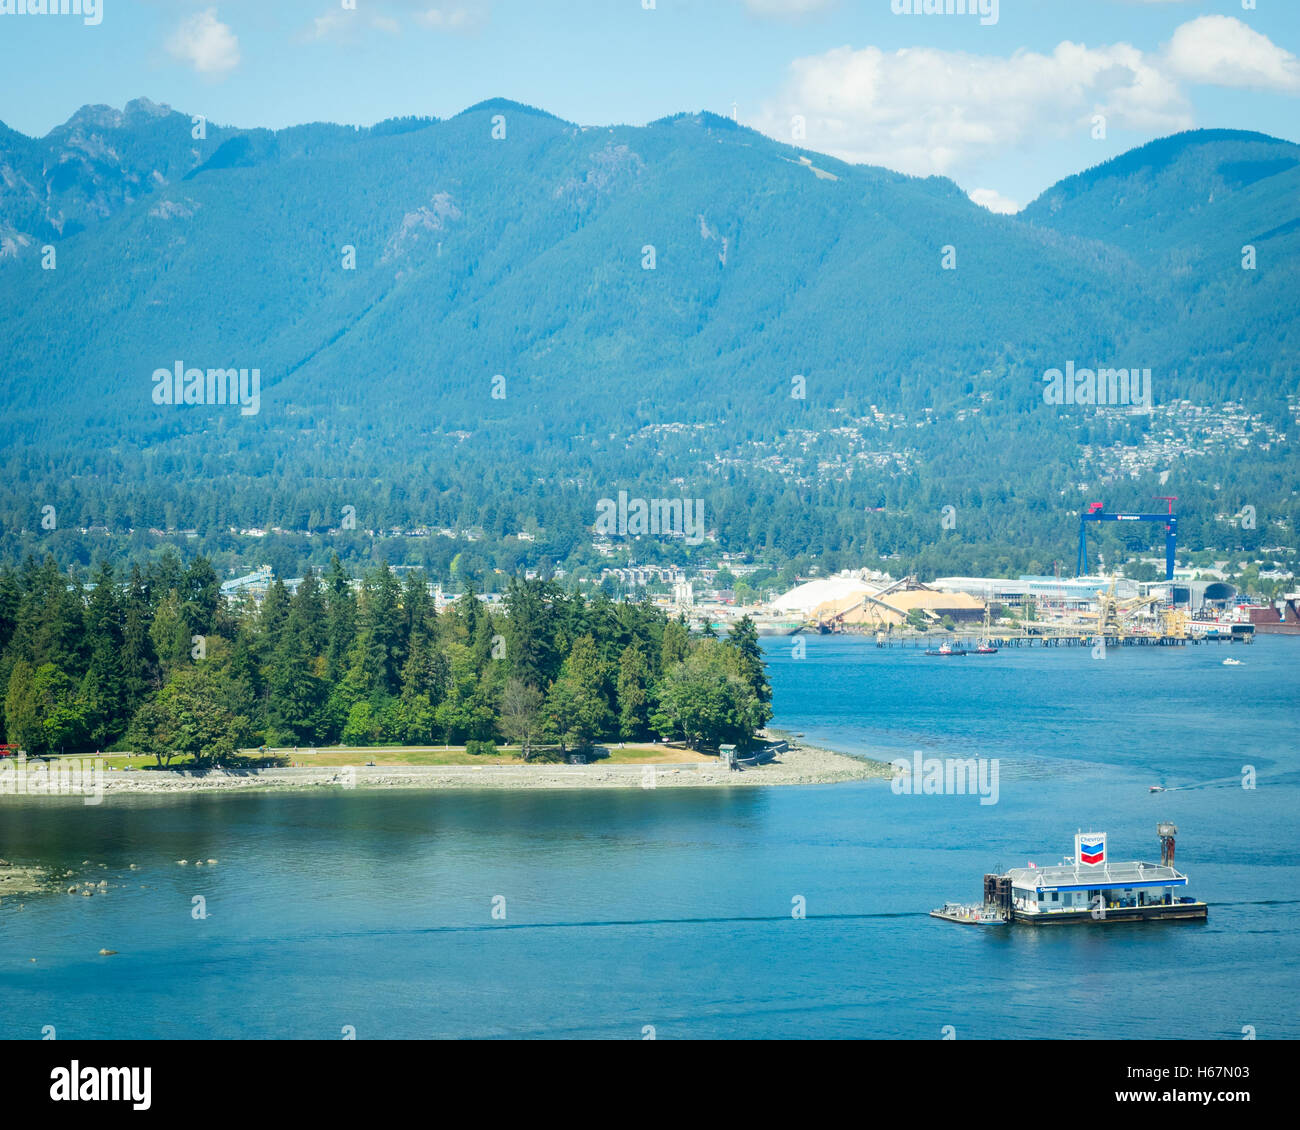 Elevated view: Coal Harbour, the floating Chevron fuel station, Stanley Park, Vancouver Harbour, and Grouse Mountain. - Stock Image